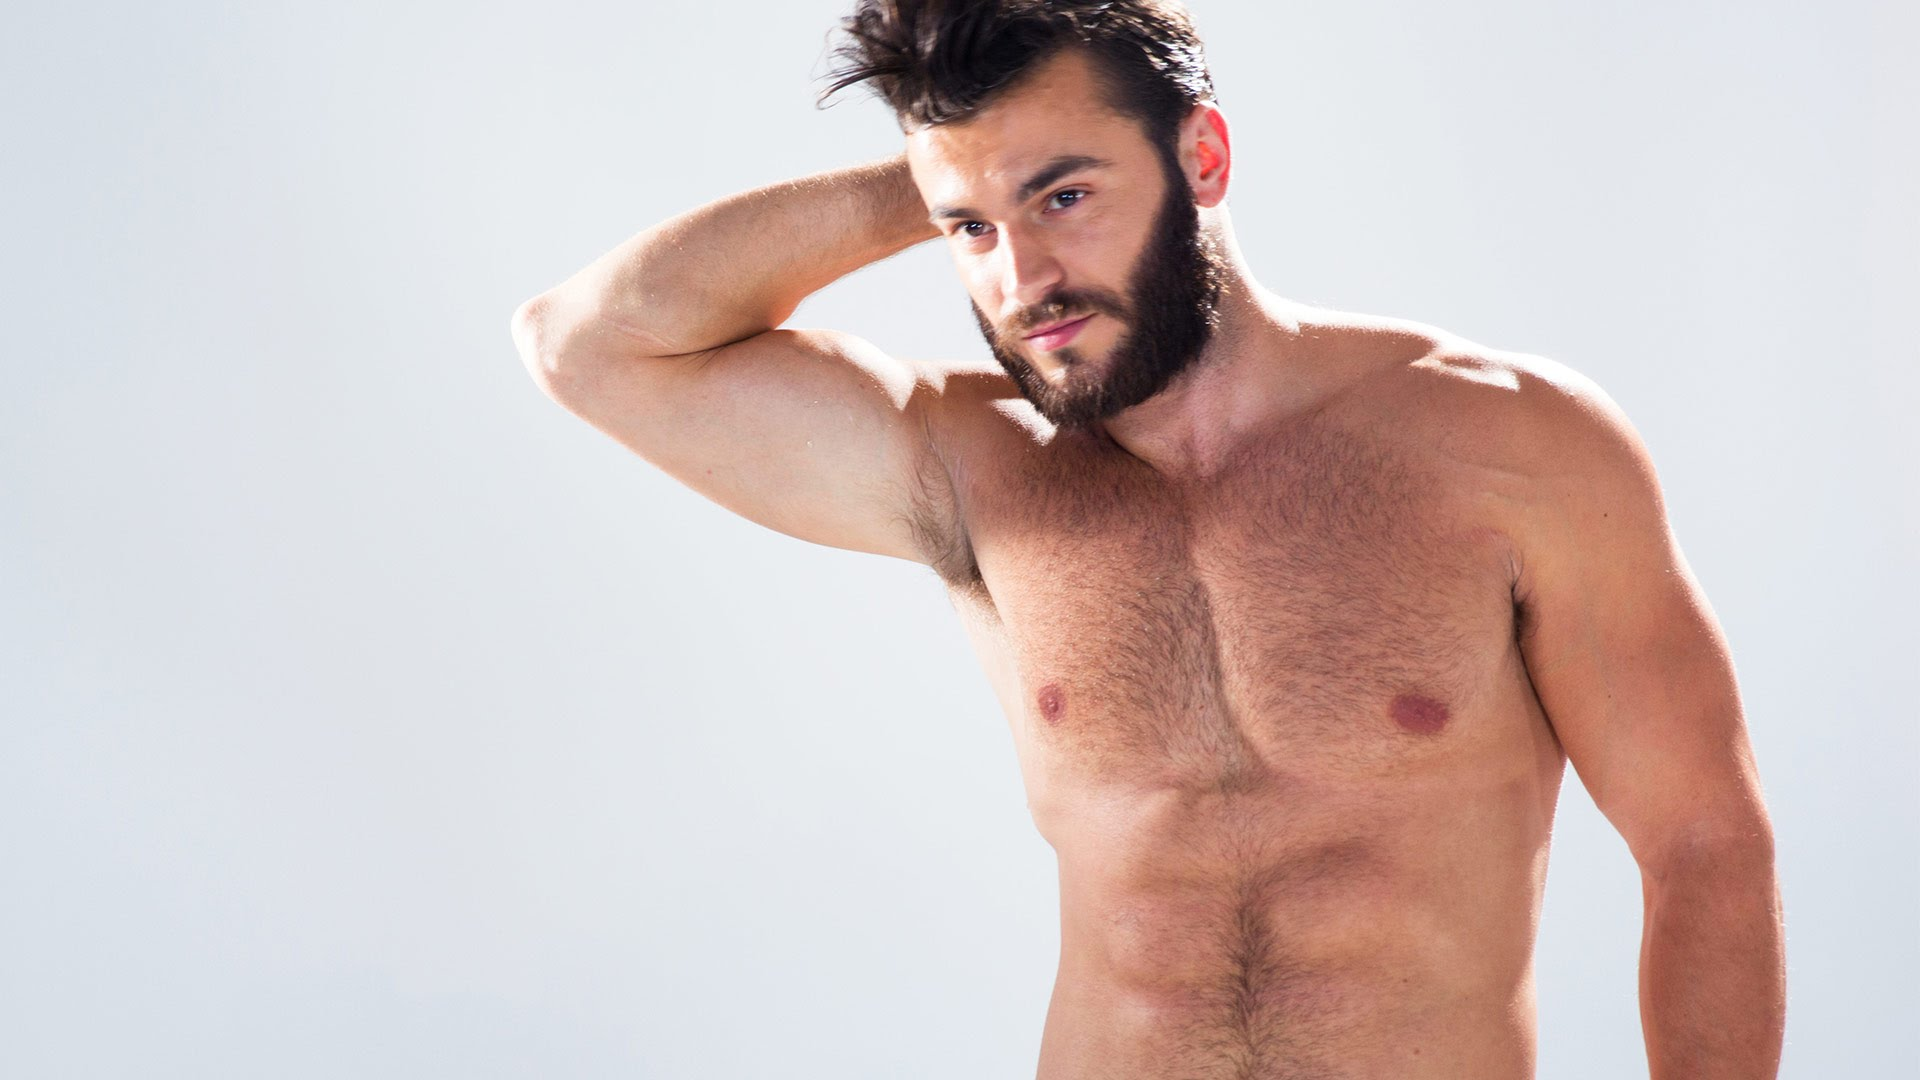 Mens-Standards-Of-Beauty-Around-The-World-Naked-Hairy-Chest-Muscle-